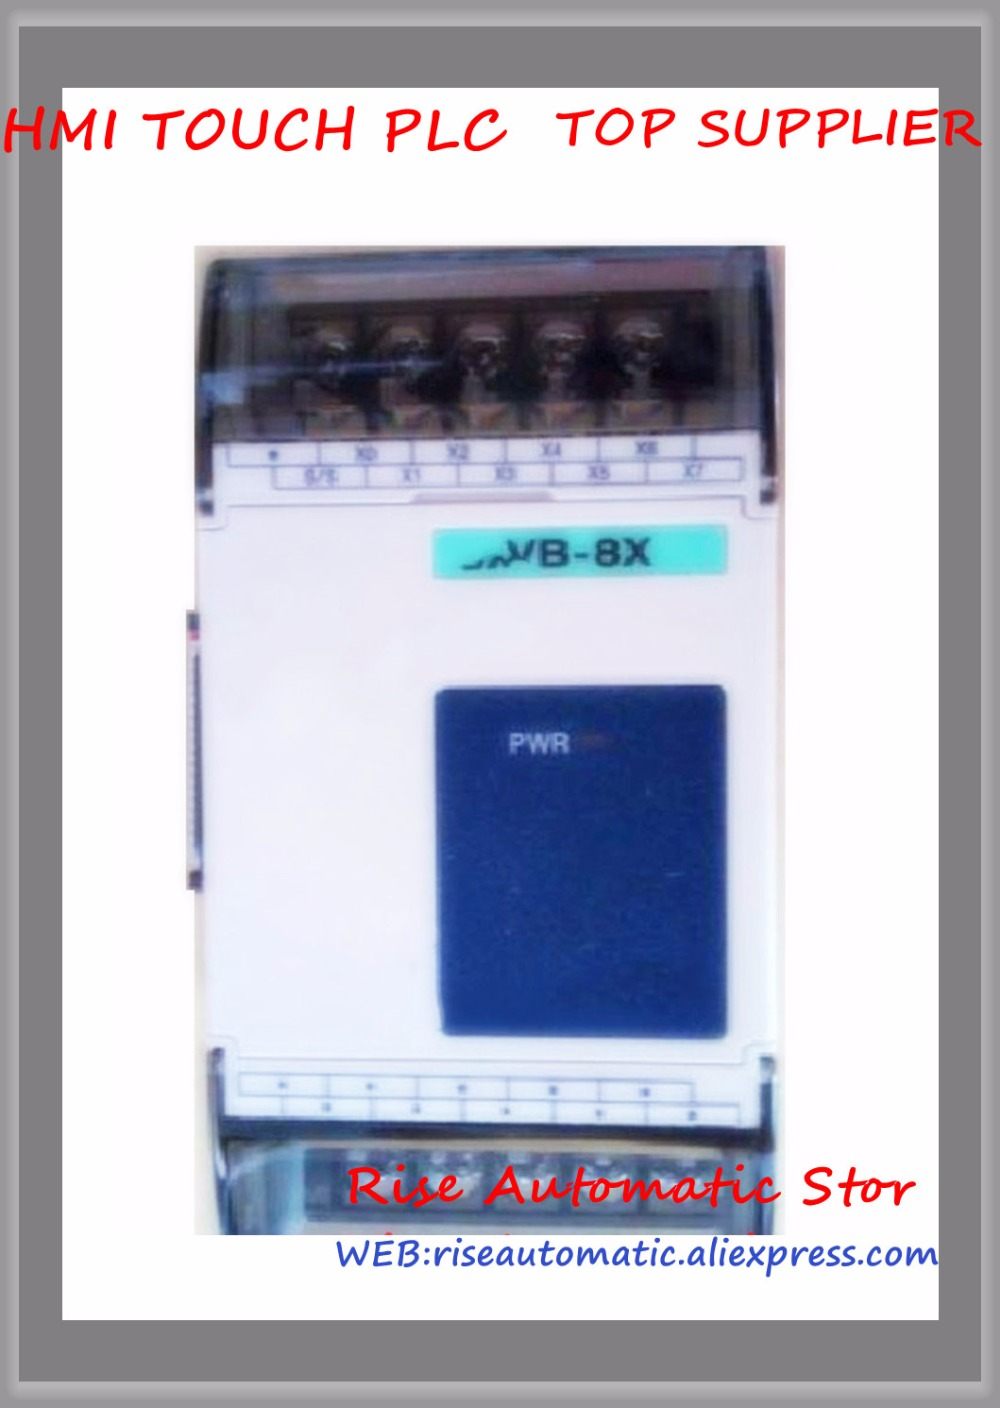 купить VB-8X-C PLC New Original 24VDC 8 point input Expansion Module по цене 3833.92 рублей